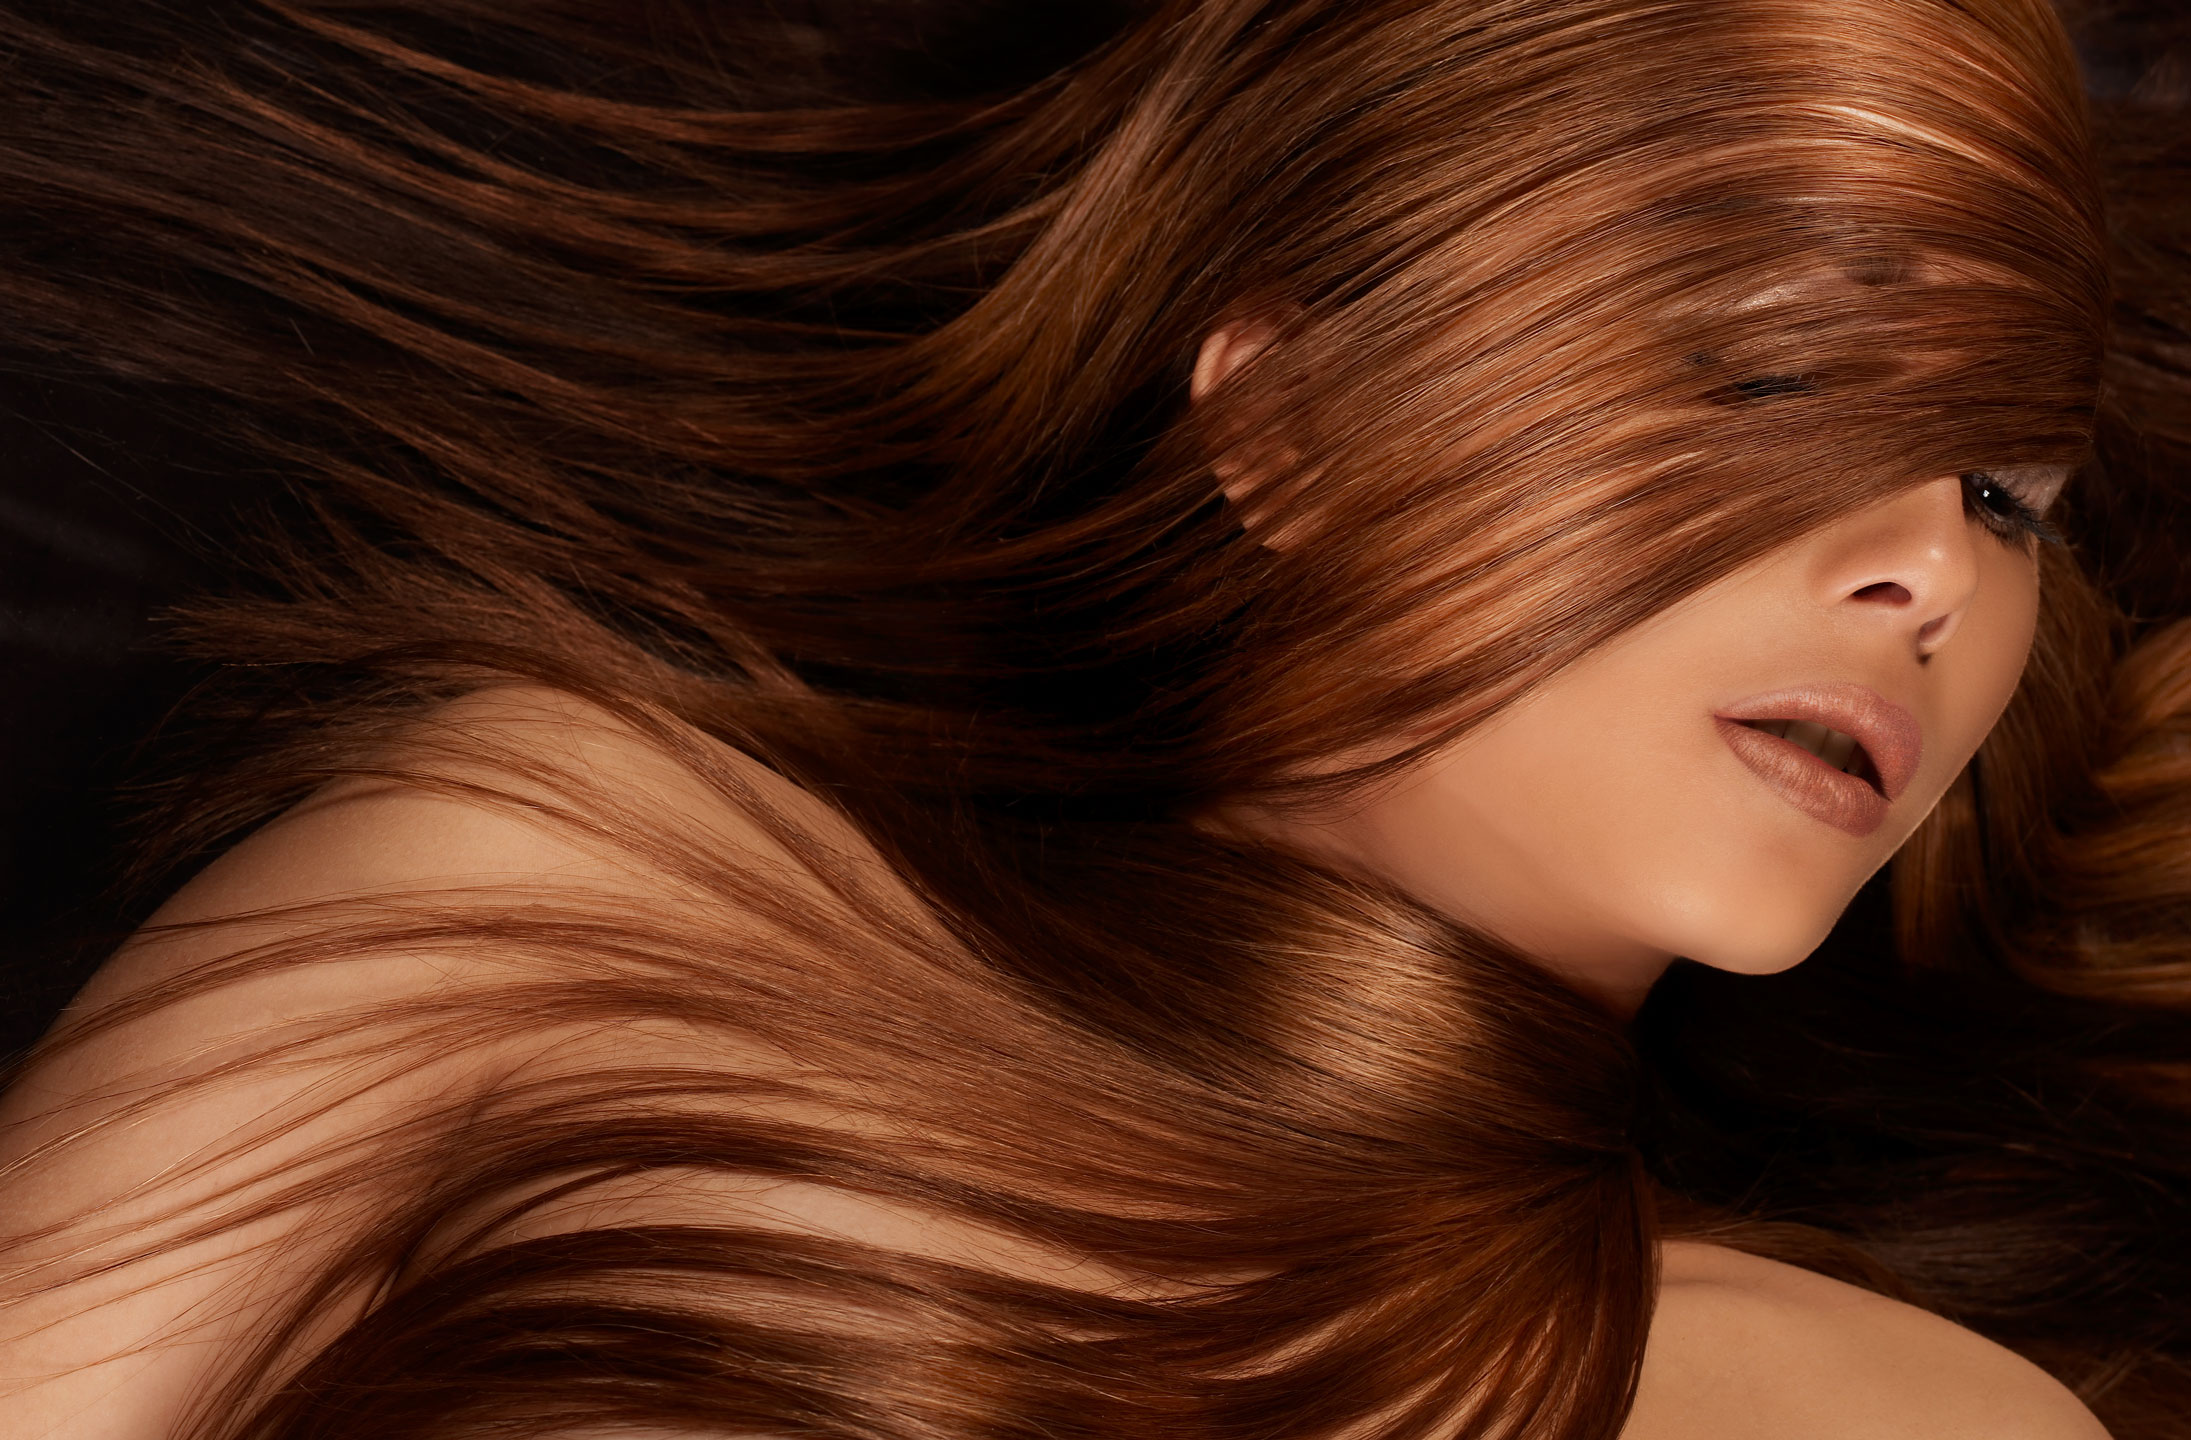 Hair-Swirls-047997-[2012-Retouch-edit]-v2-[Crop-300dpi-unconstrained].jpg